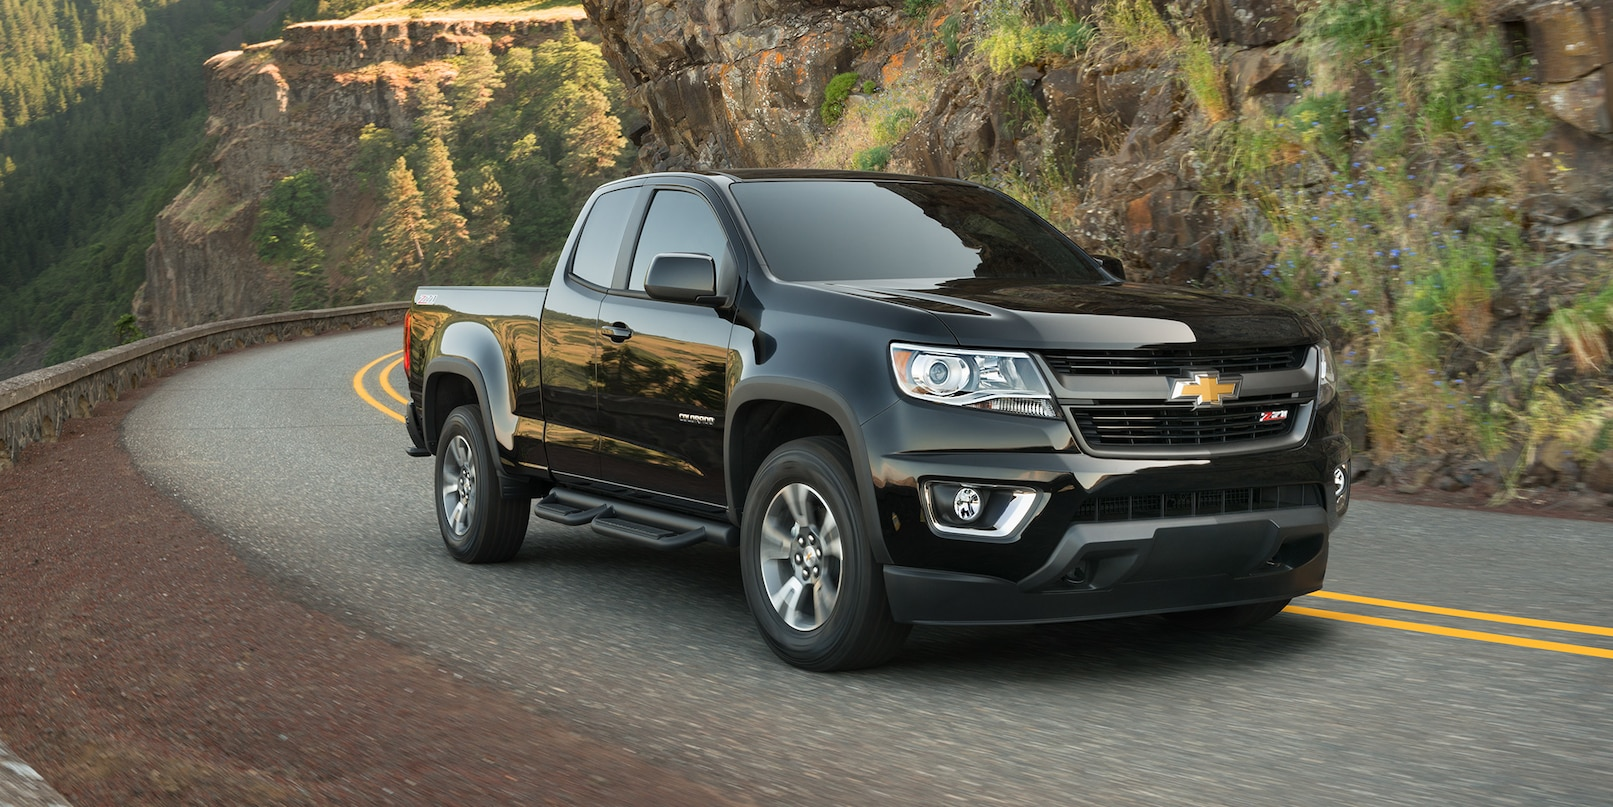 2019 Chevrolet Colorado for Sale near Escondido, CA